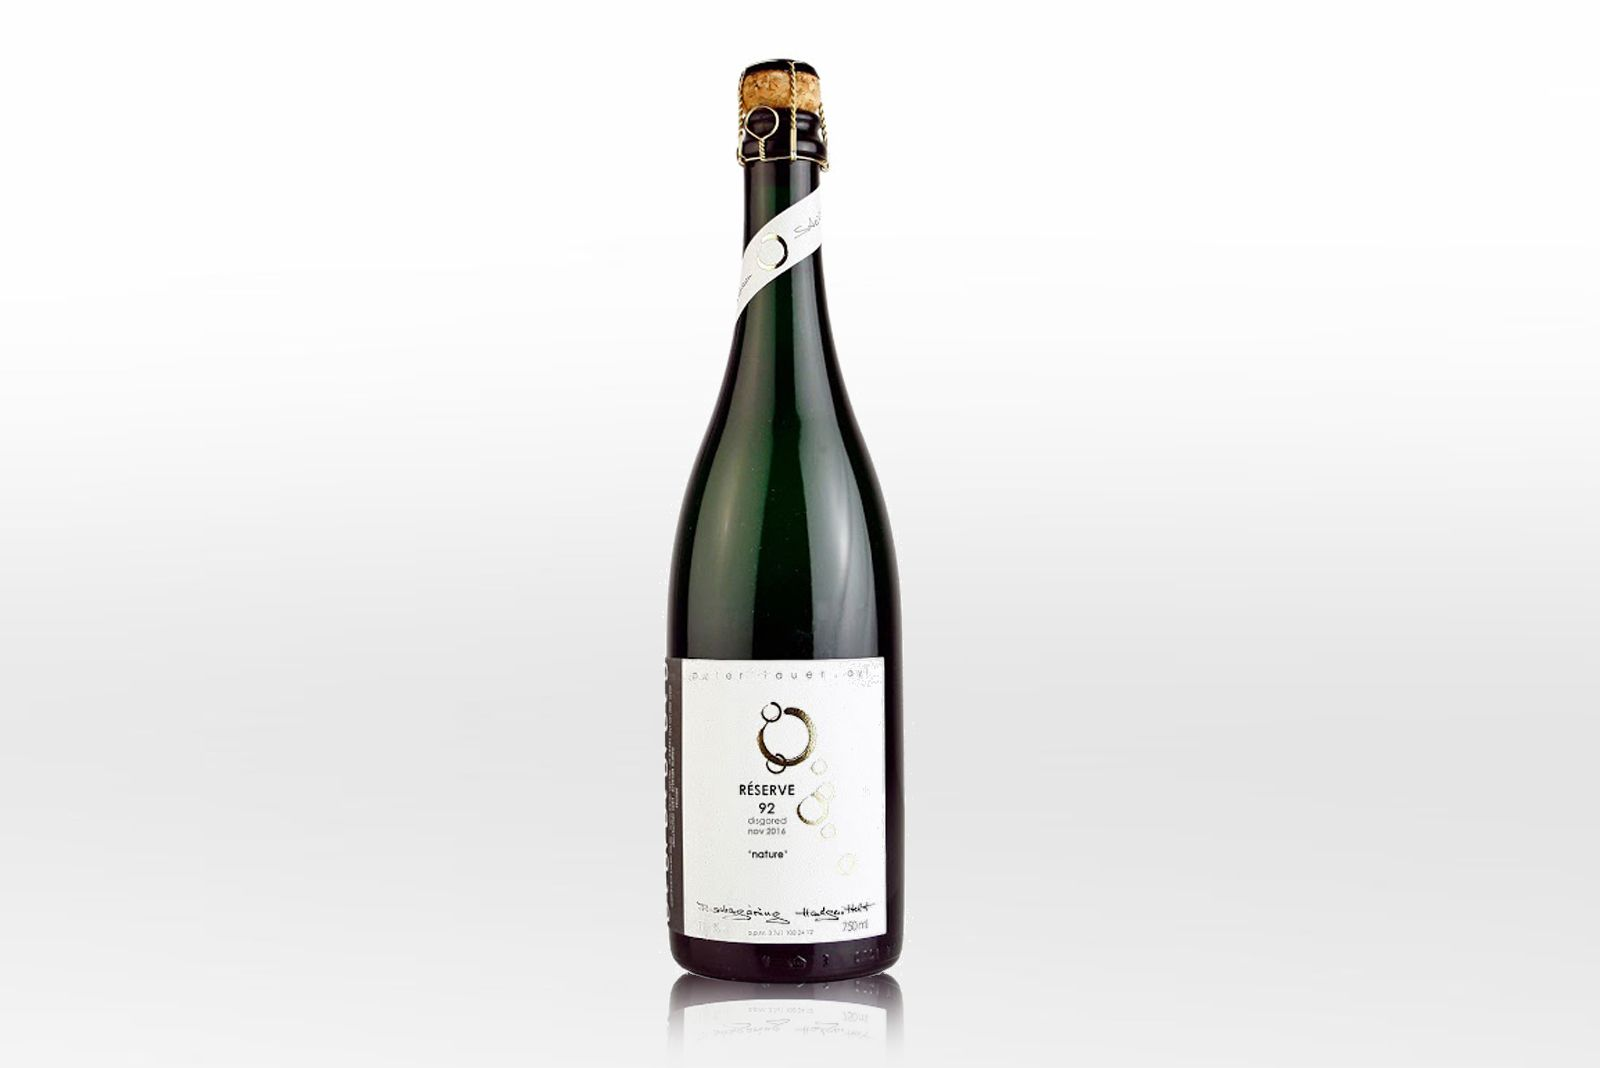 RIESLING-SEKT: Brut nature, Peter Lauer, 1992, ab 39 Euro